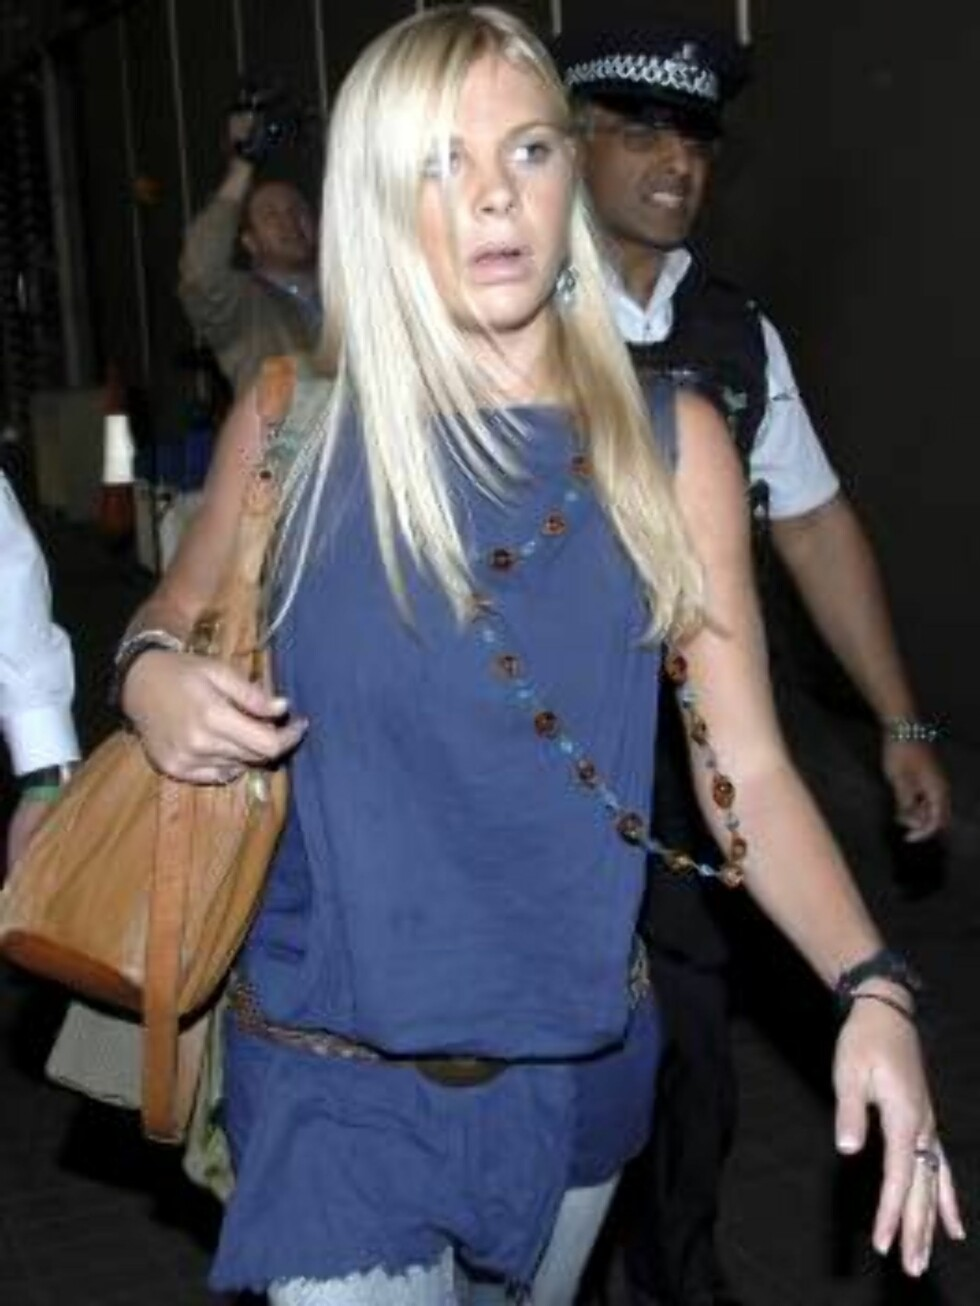 Chelsy Davy girlfriend of Britain's Prince Harry, arrives at London's Heathrow Airport from South Africa Tuesday April 11, 2006. (AP Photo/Str) ** UNITED KINGDOM OUT, NO SALES,  NO MAGS, NO INTERNET** Foto: AP